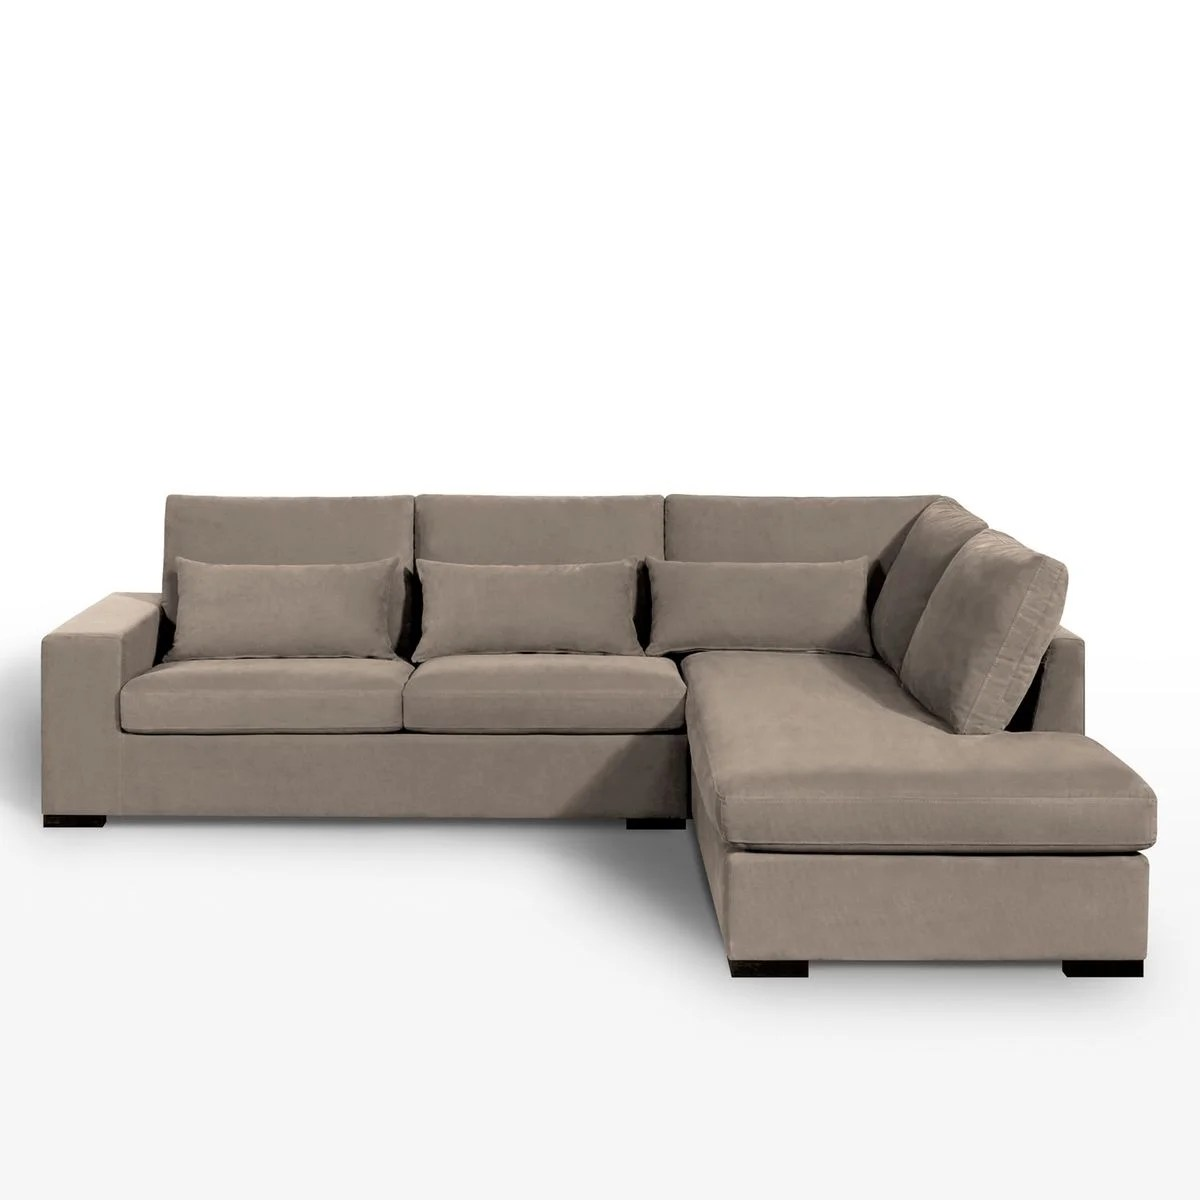 https www laredoute fr lndng ctlg aspx artcl canape angle taupe